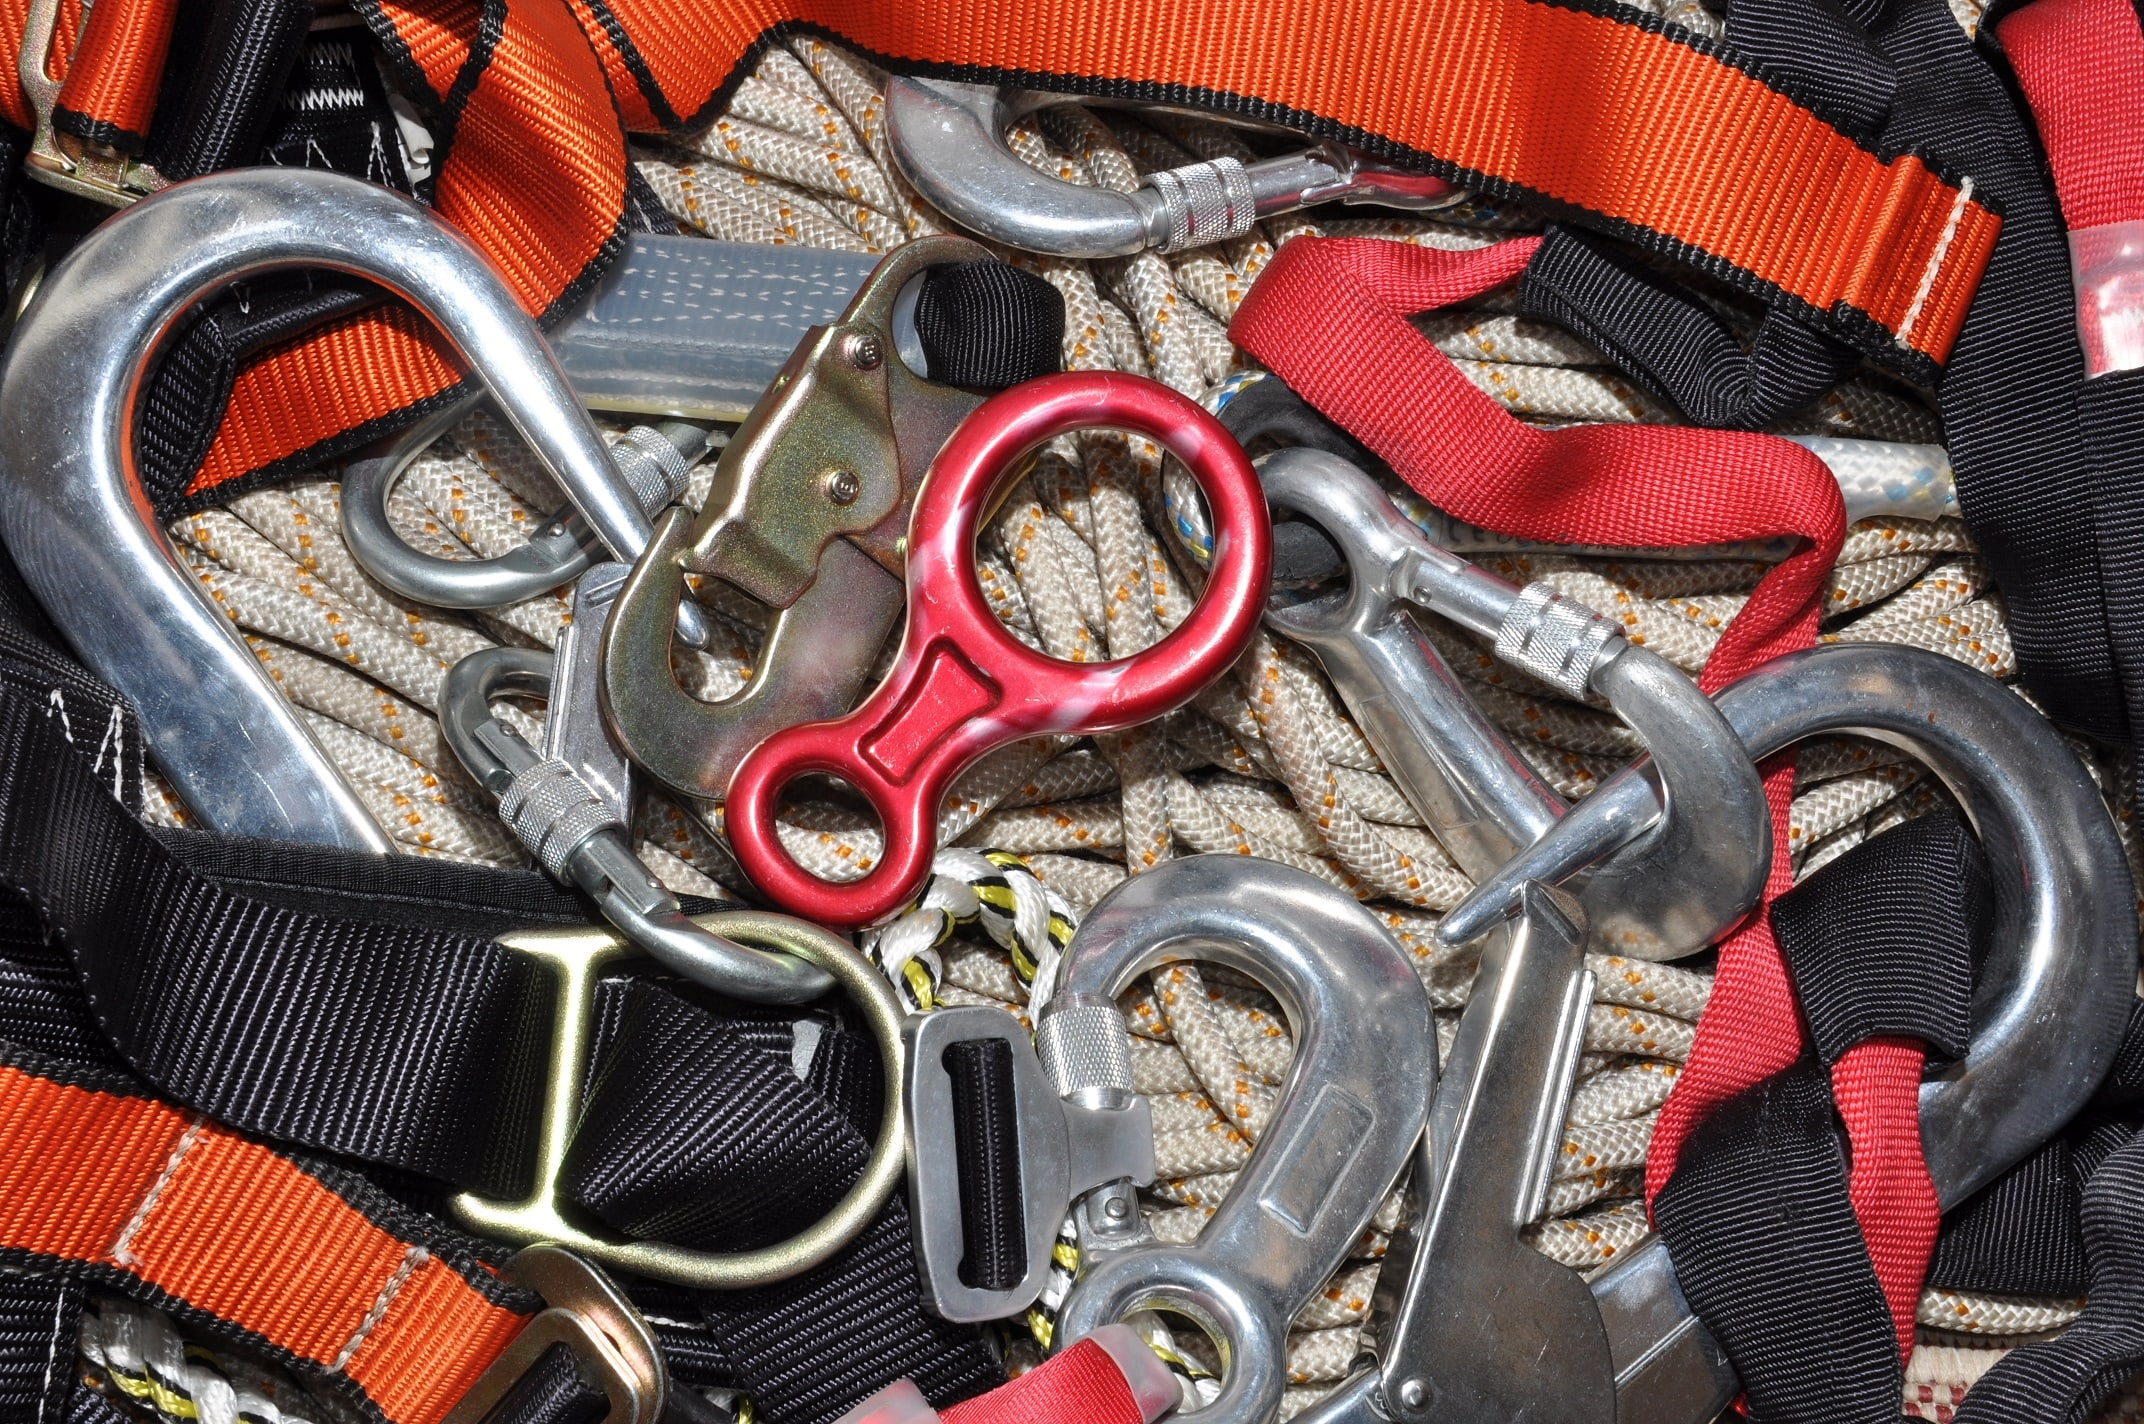 Pile of harnesses and safety equipment